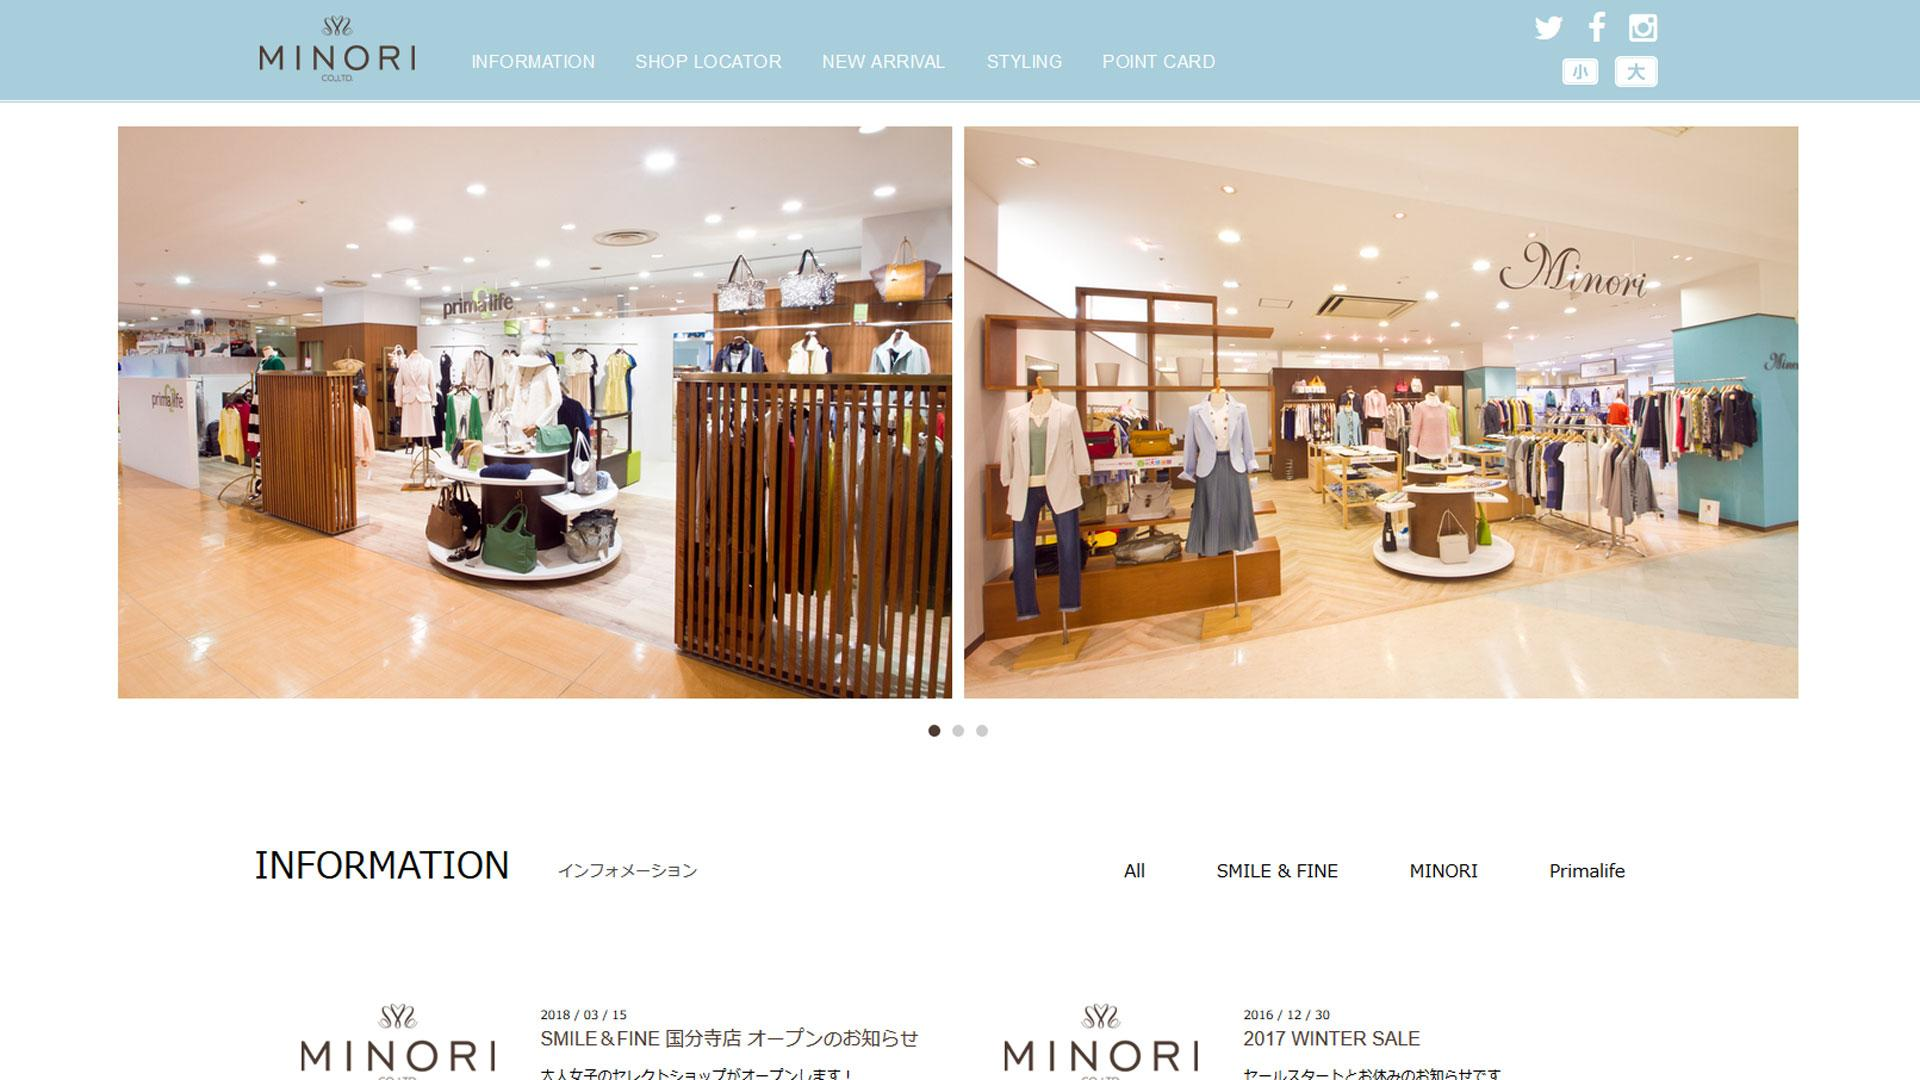 MINORI Website Renewal